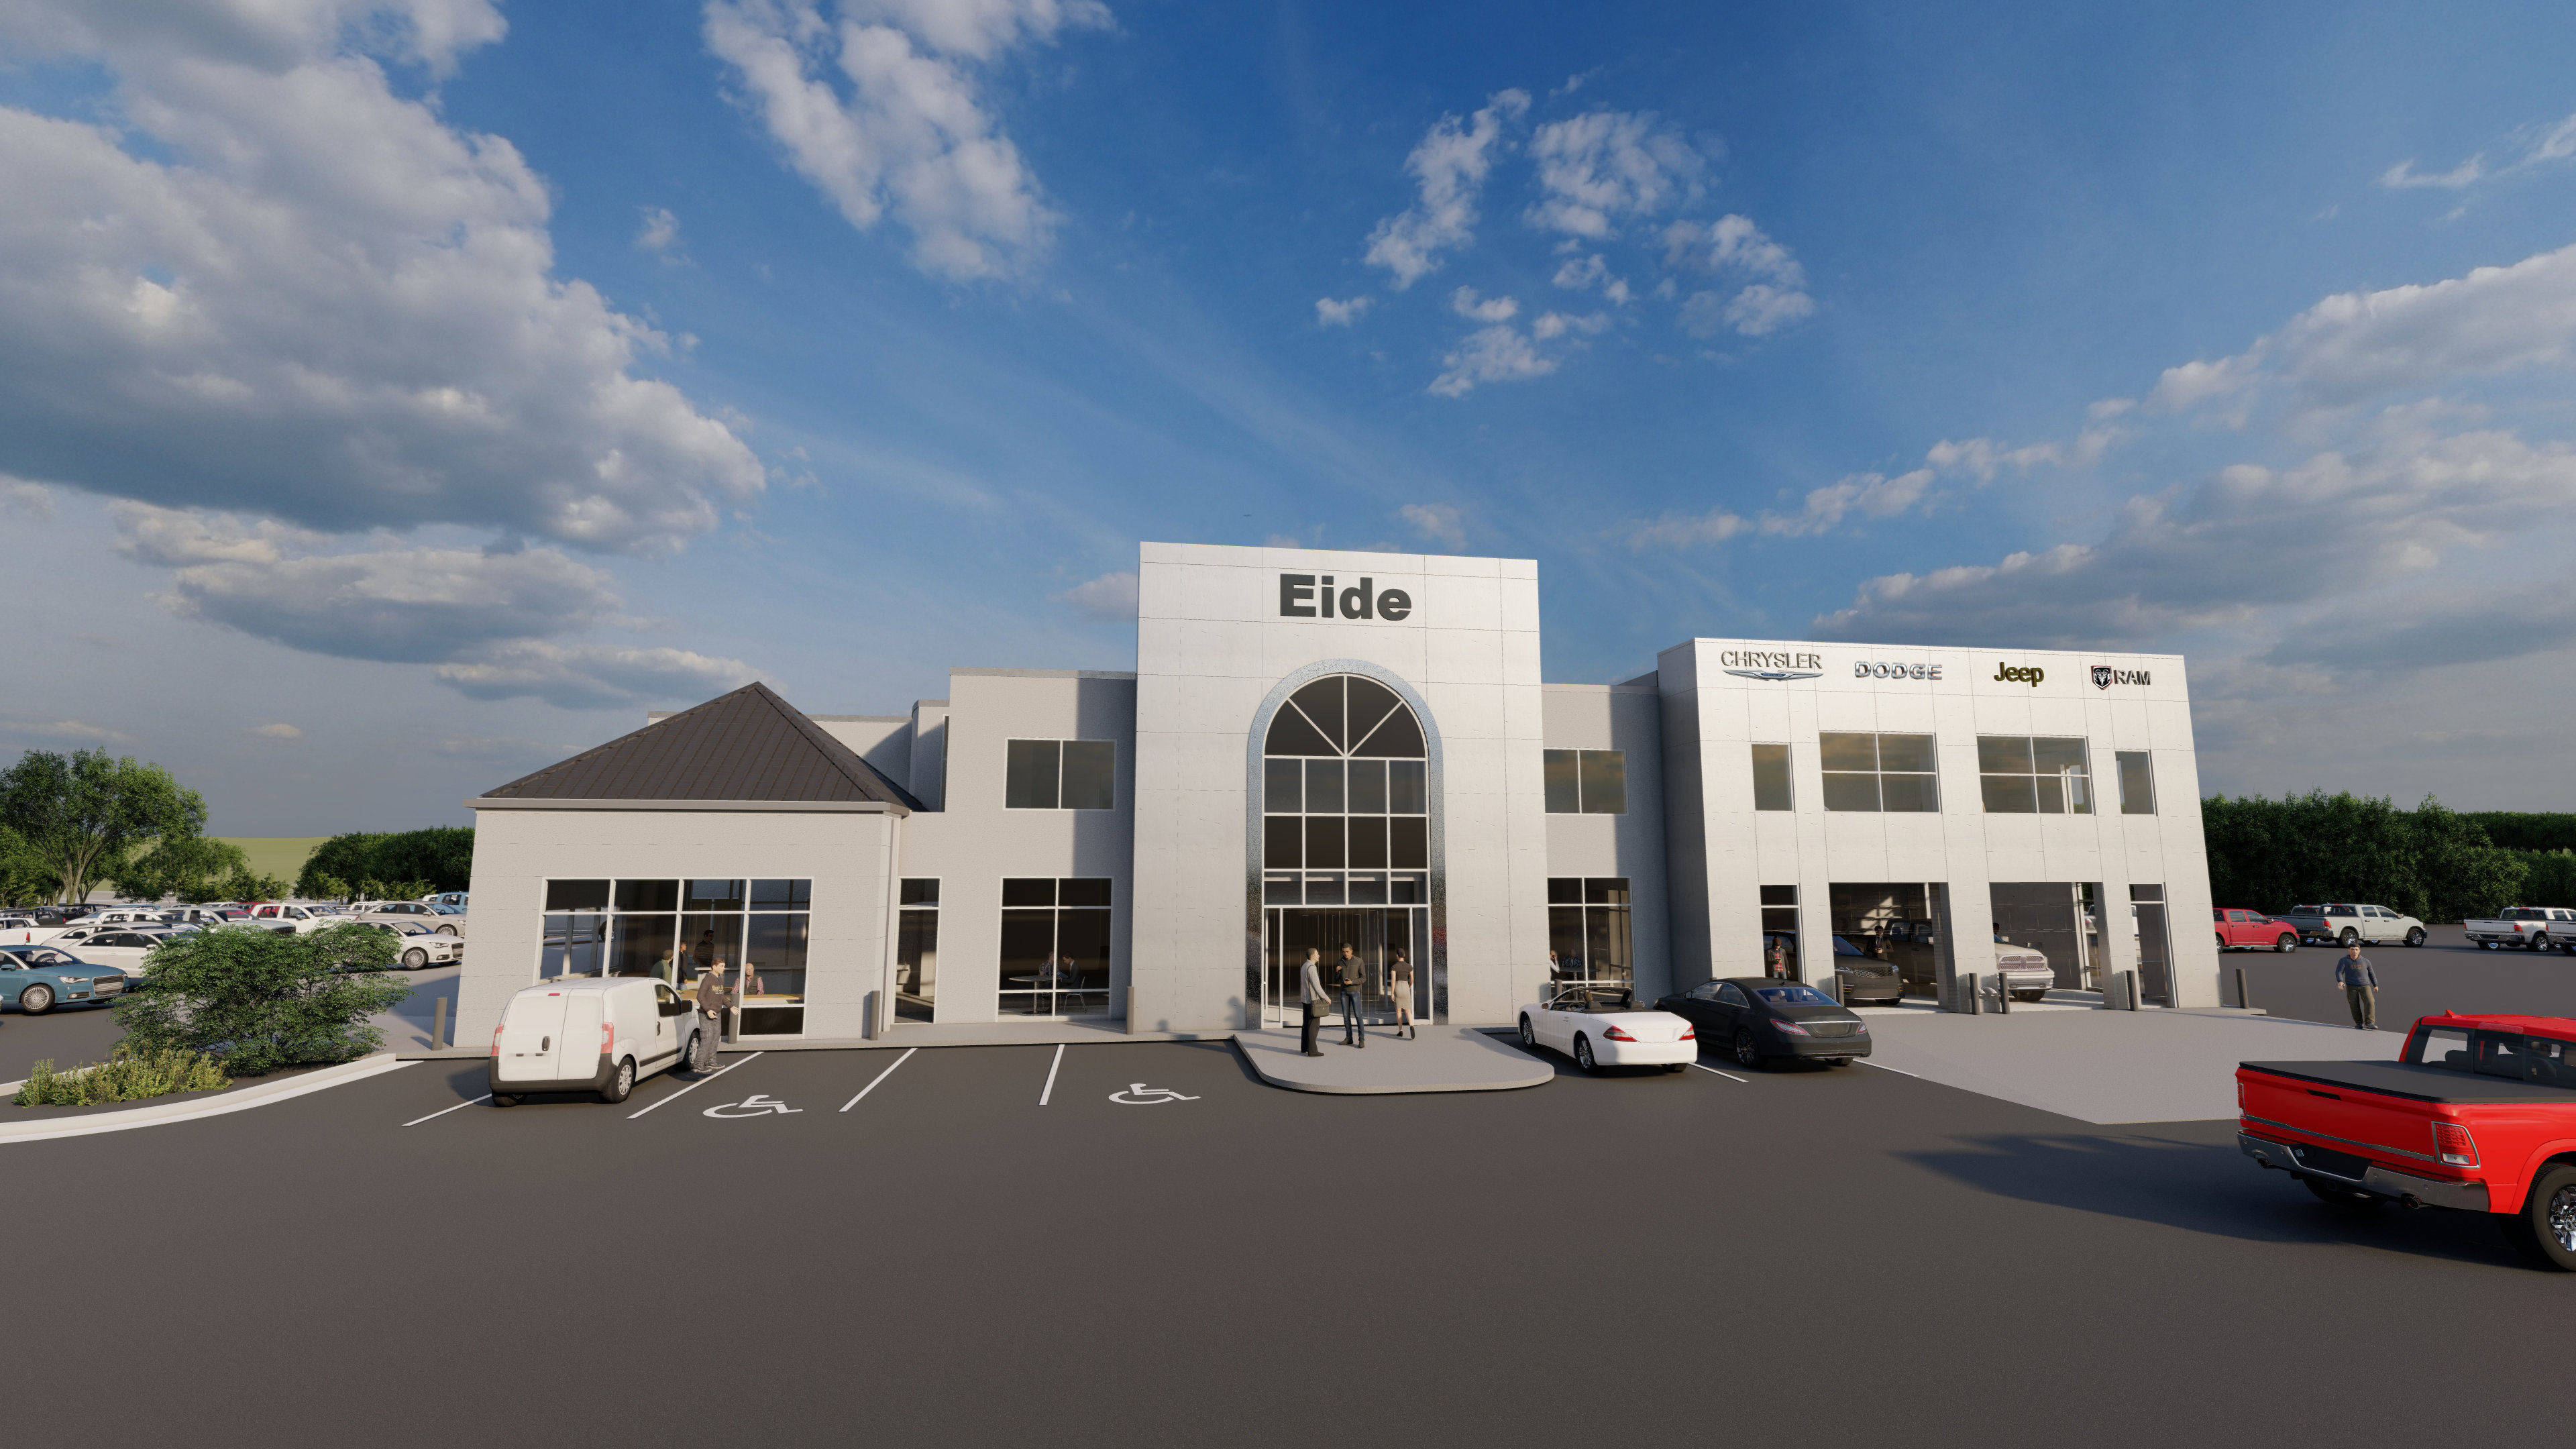 Eide Chrysler is expanding!